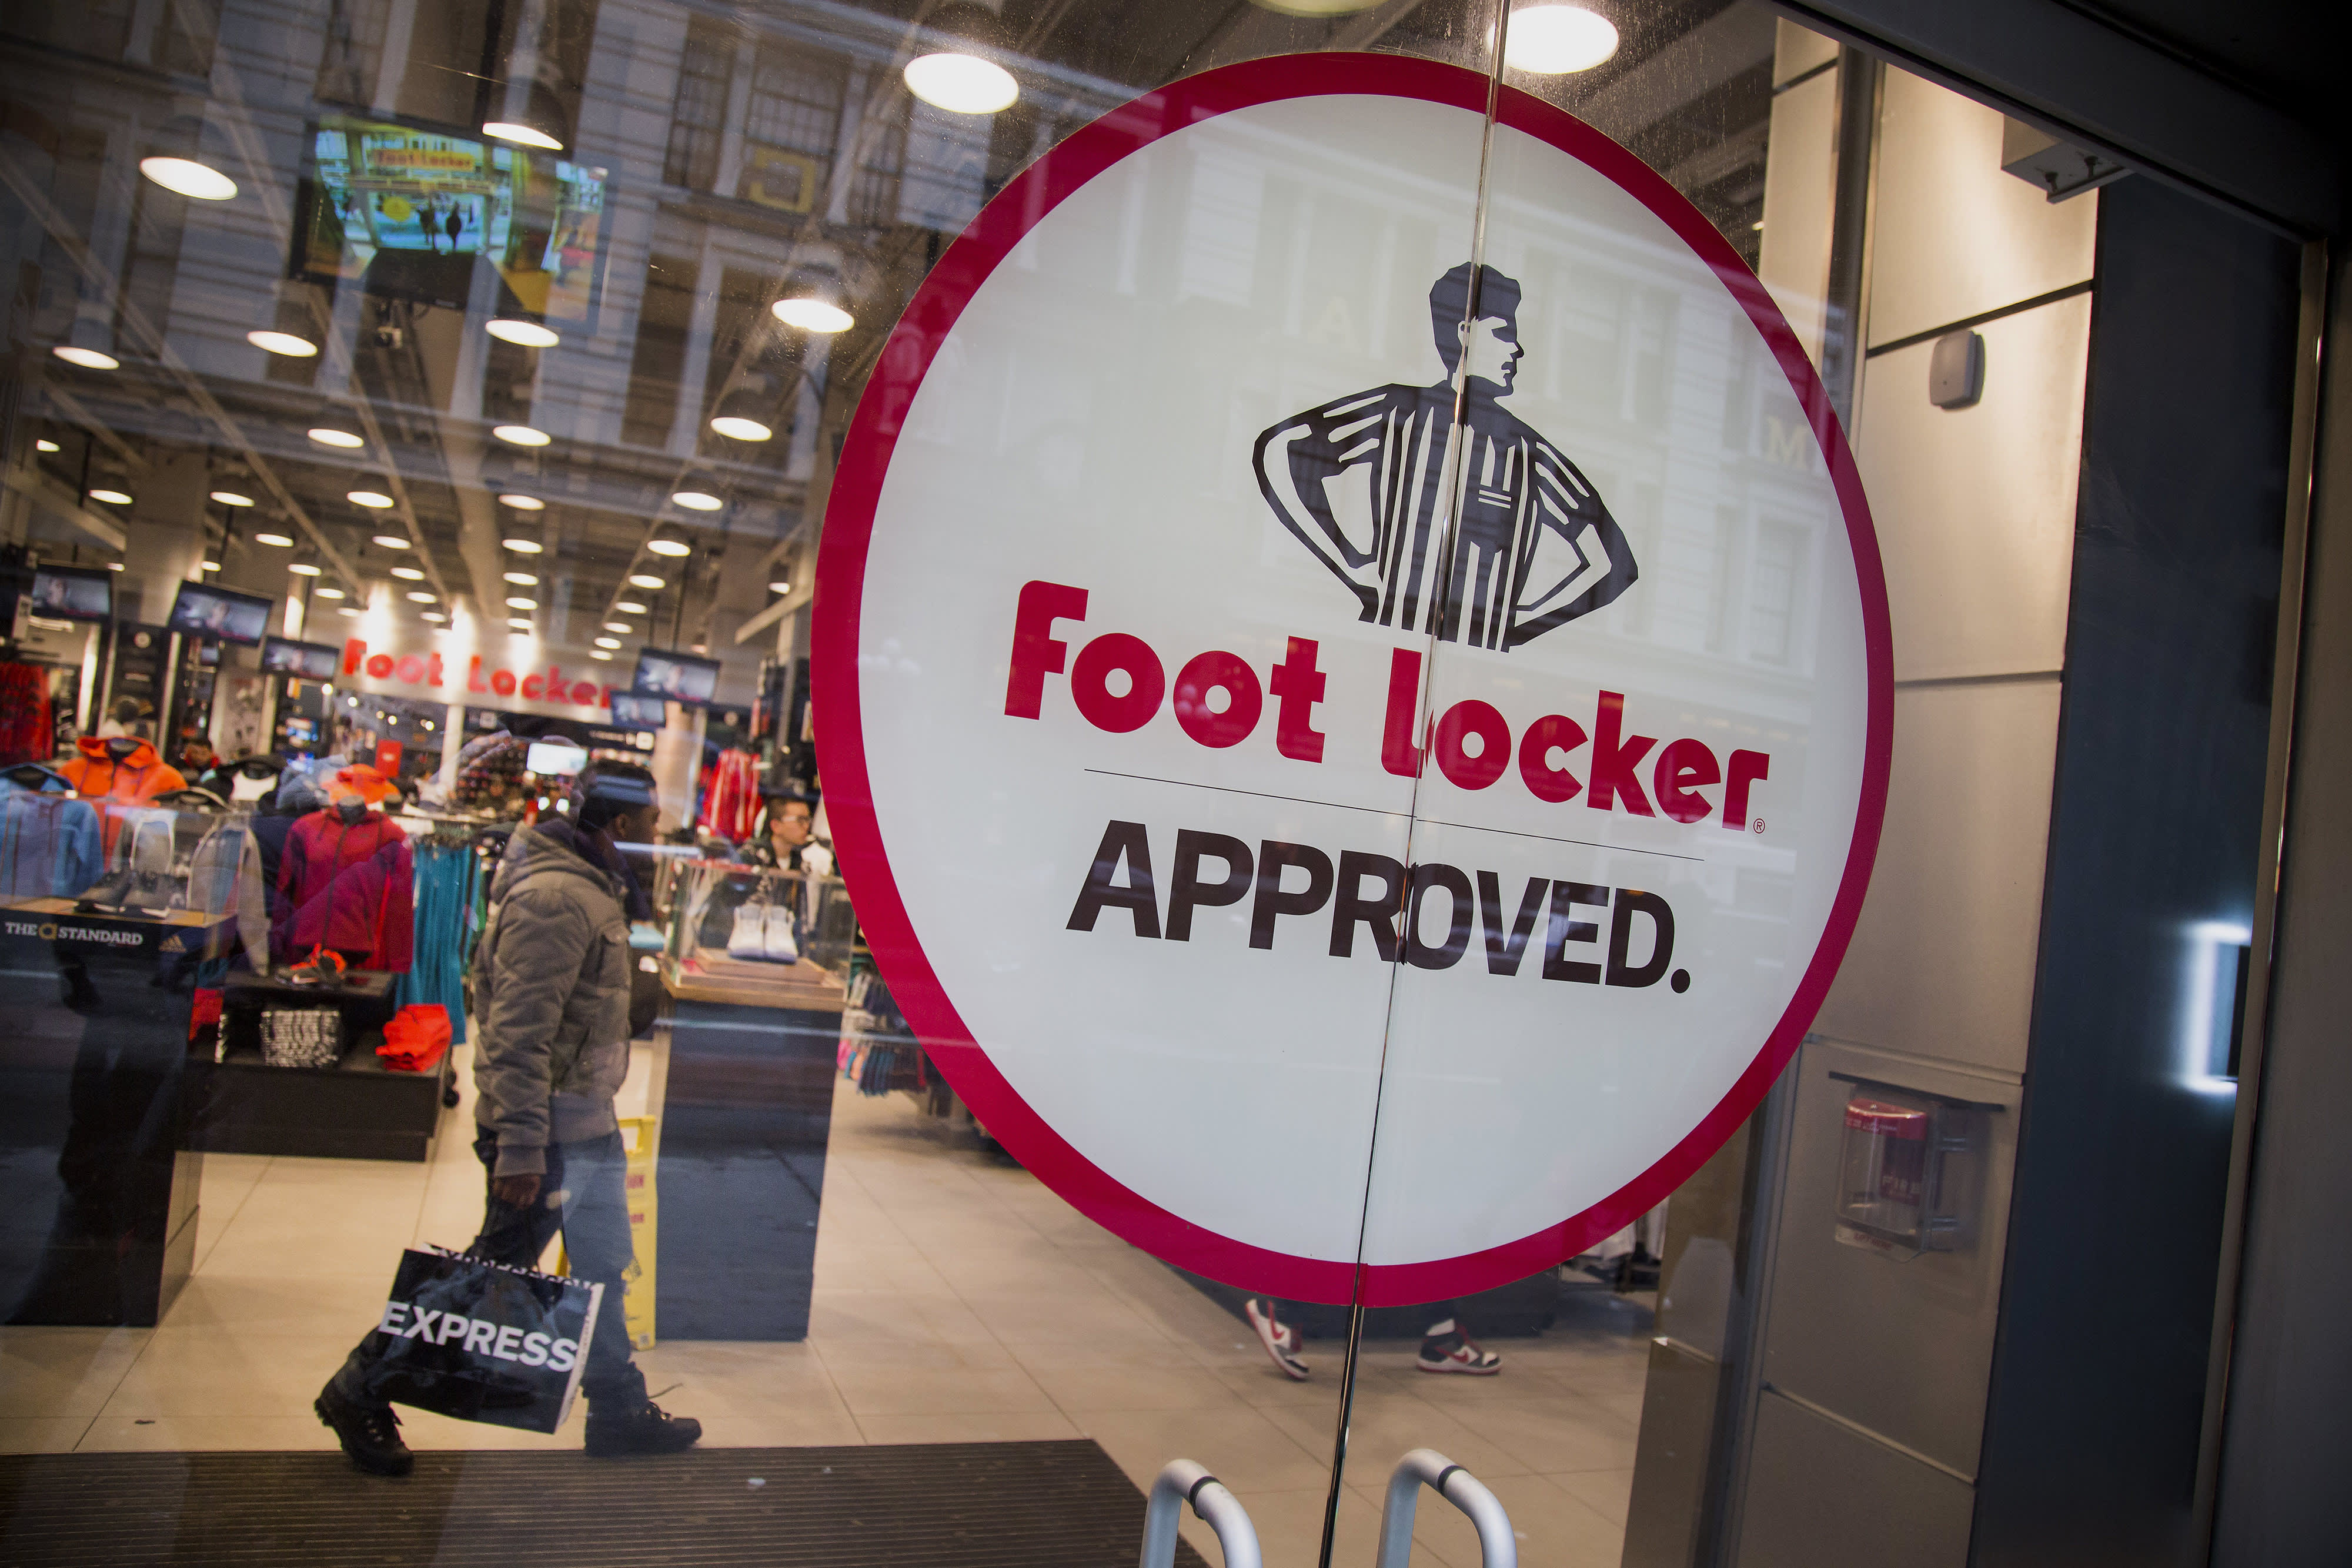 Consumer sentiment, economy gauges, Foot Locker earnings: 3 things to watch for Friday